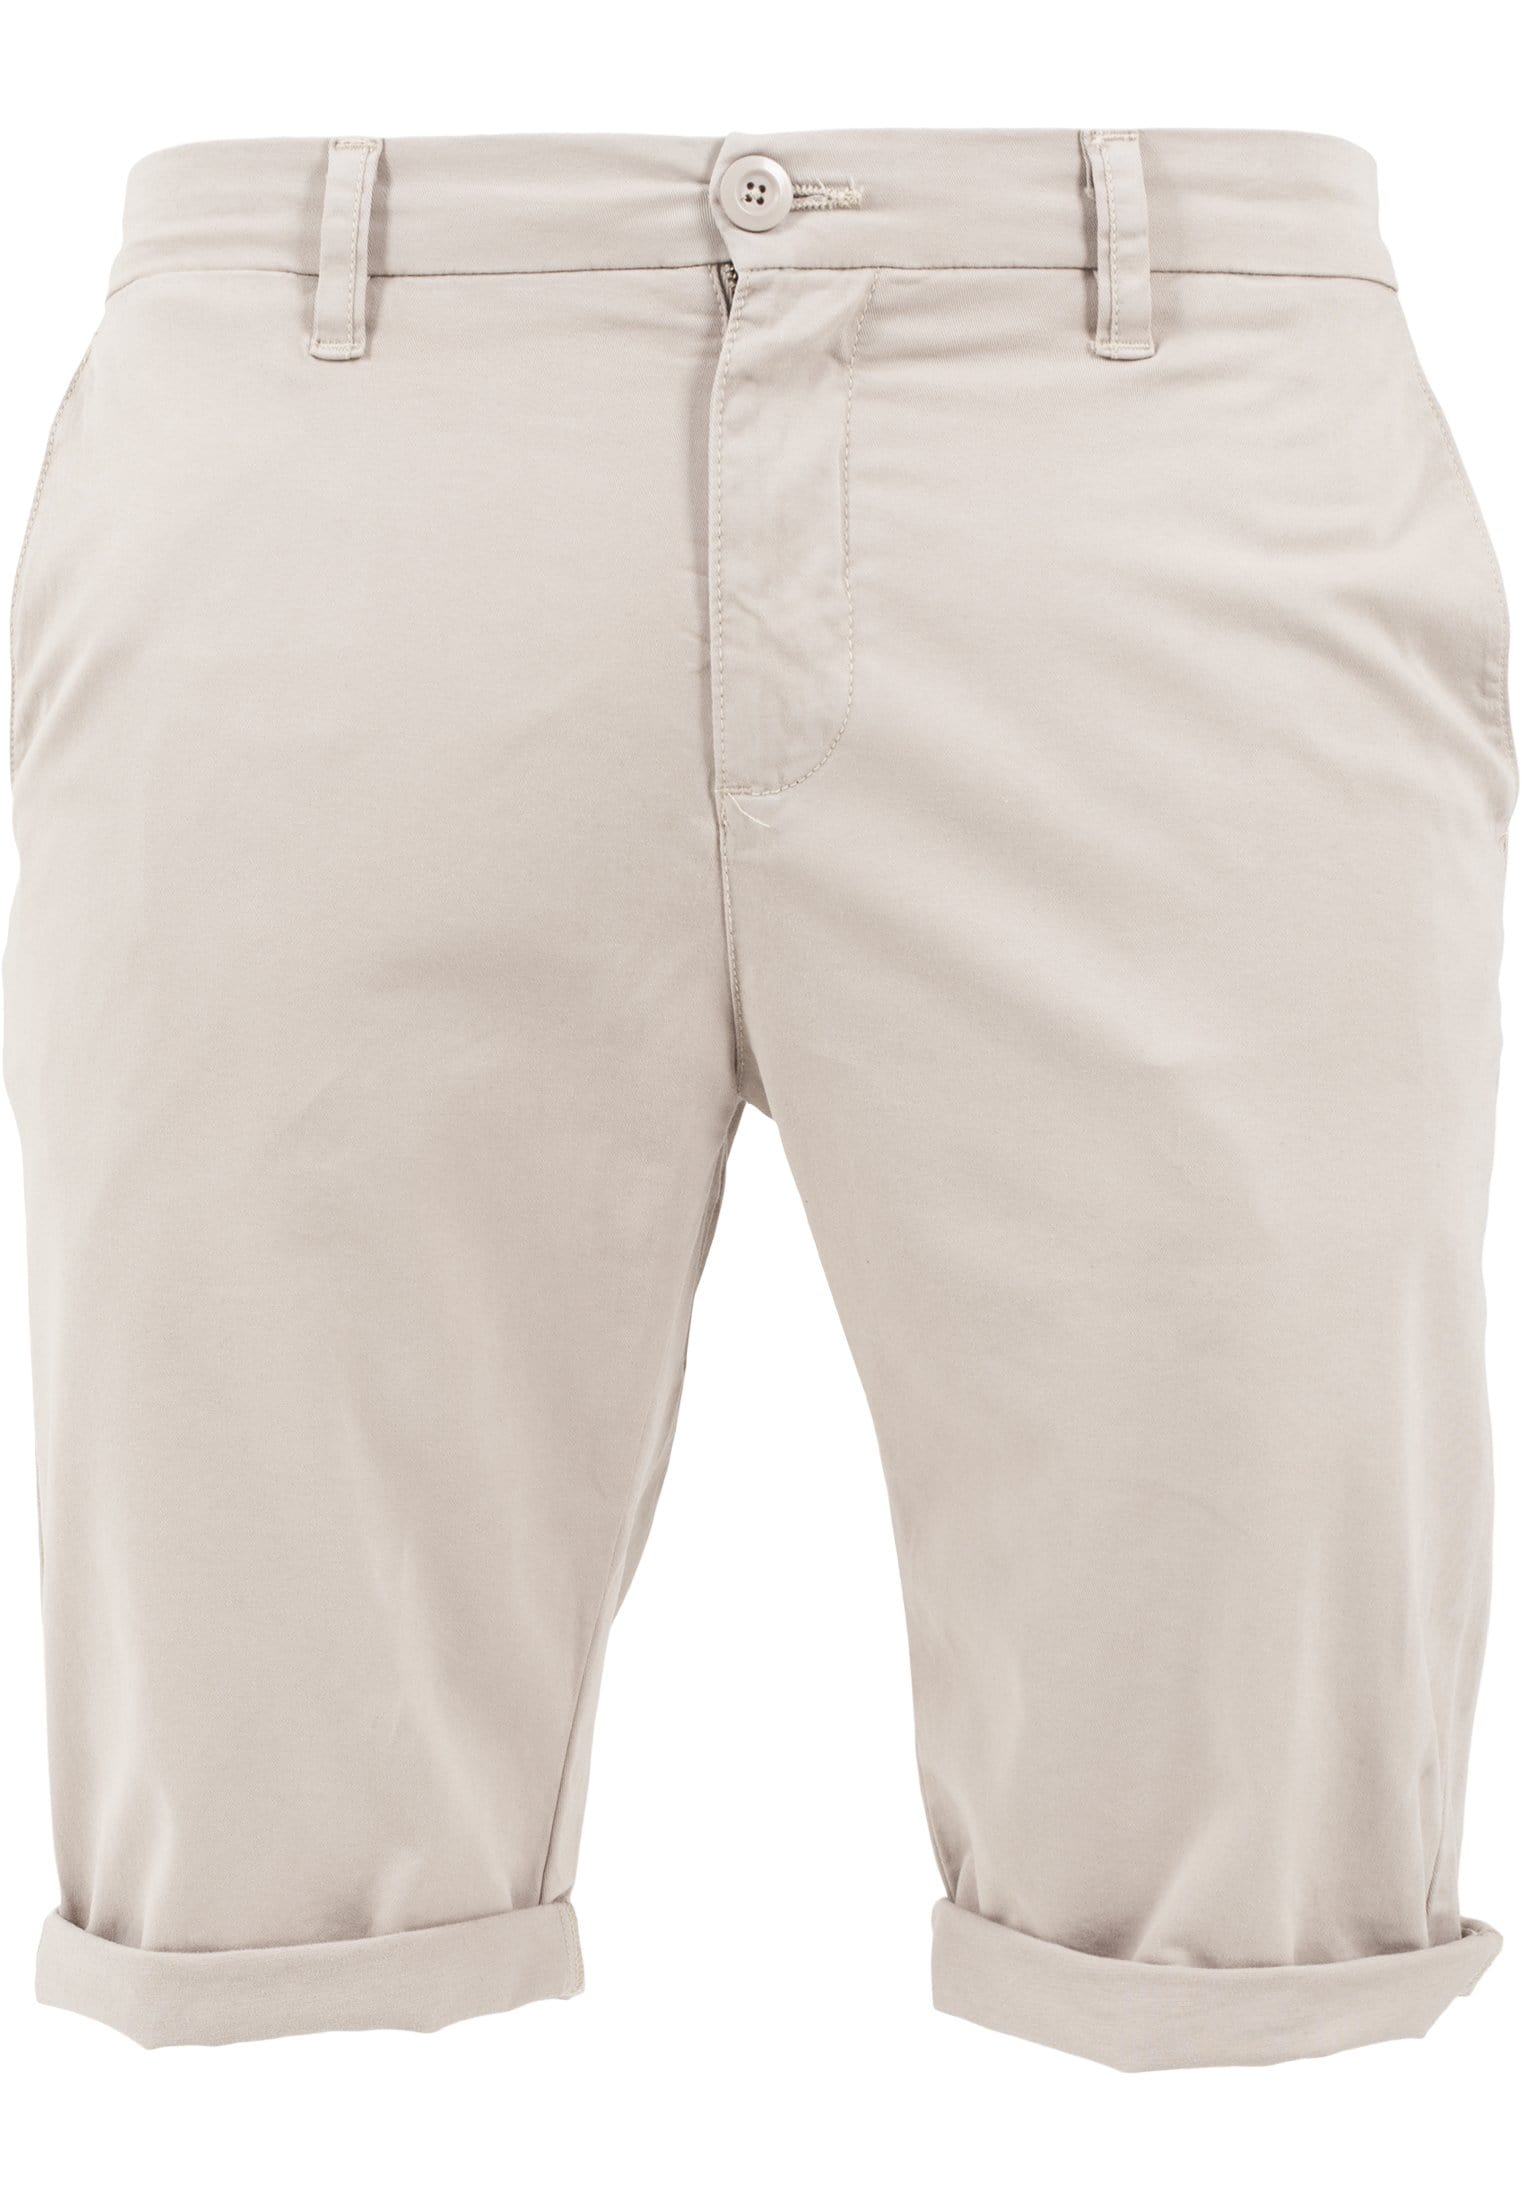 Image of   Stretch Turnup Chino Shorts - Sand